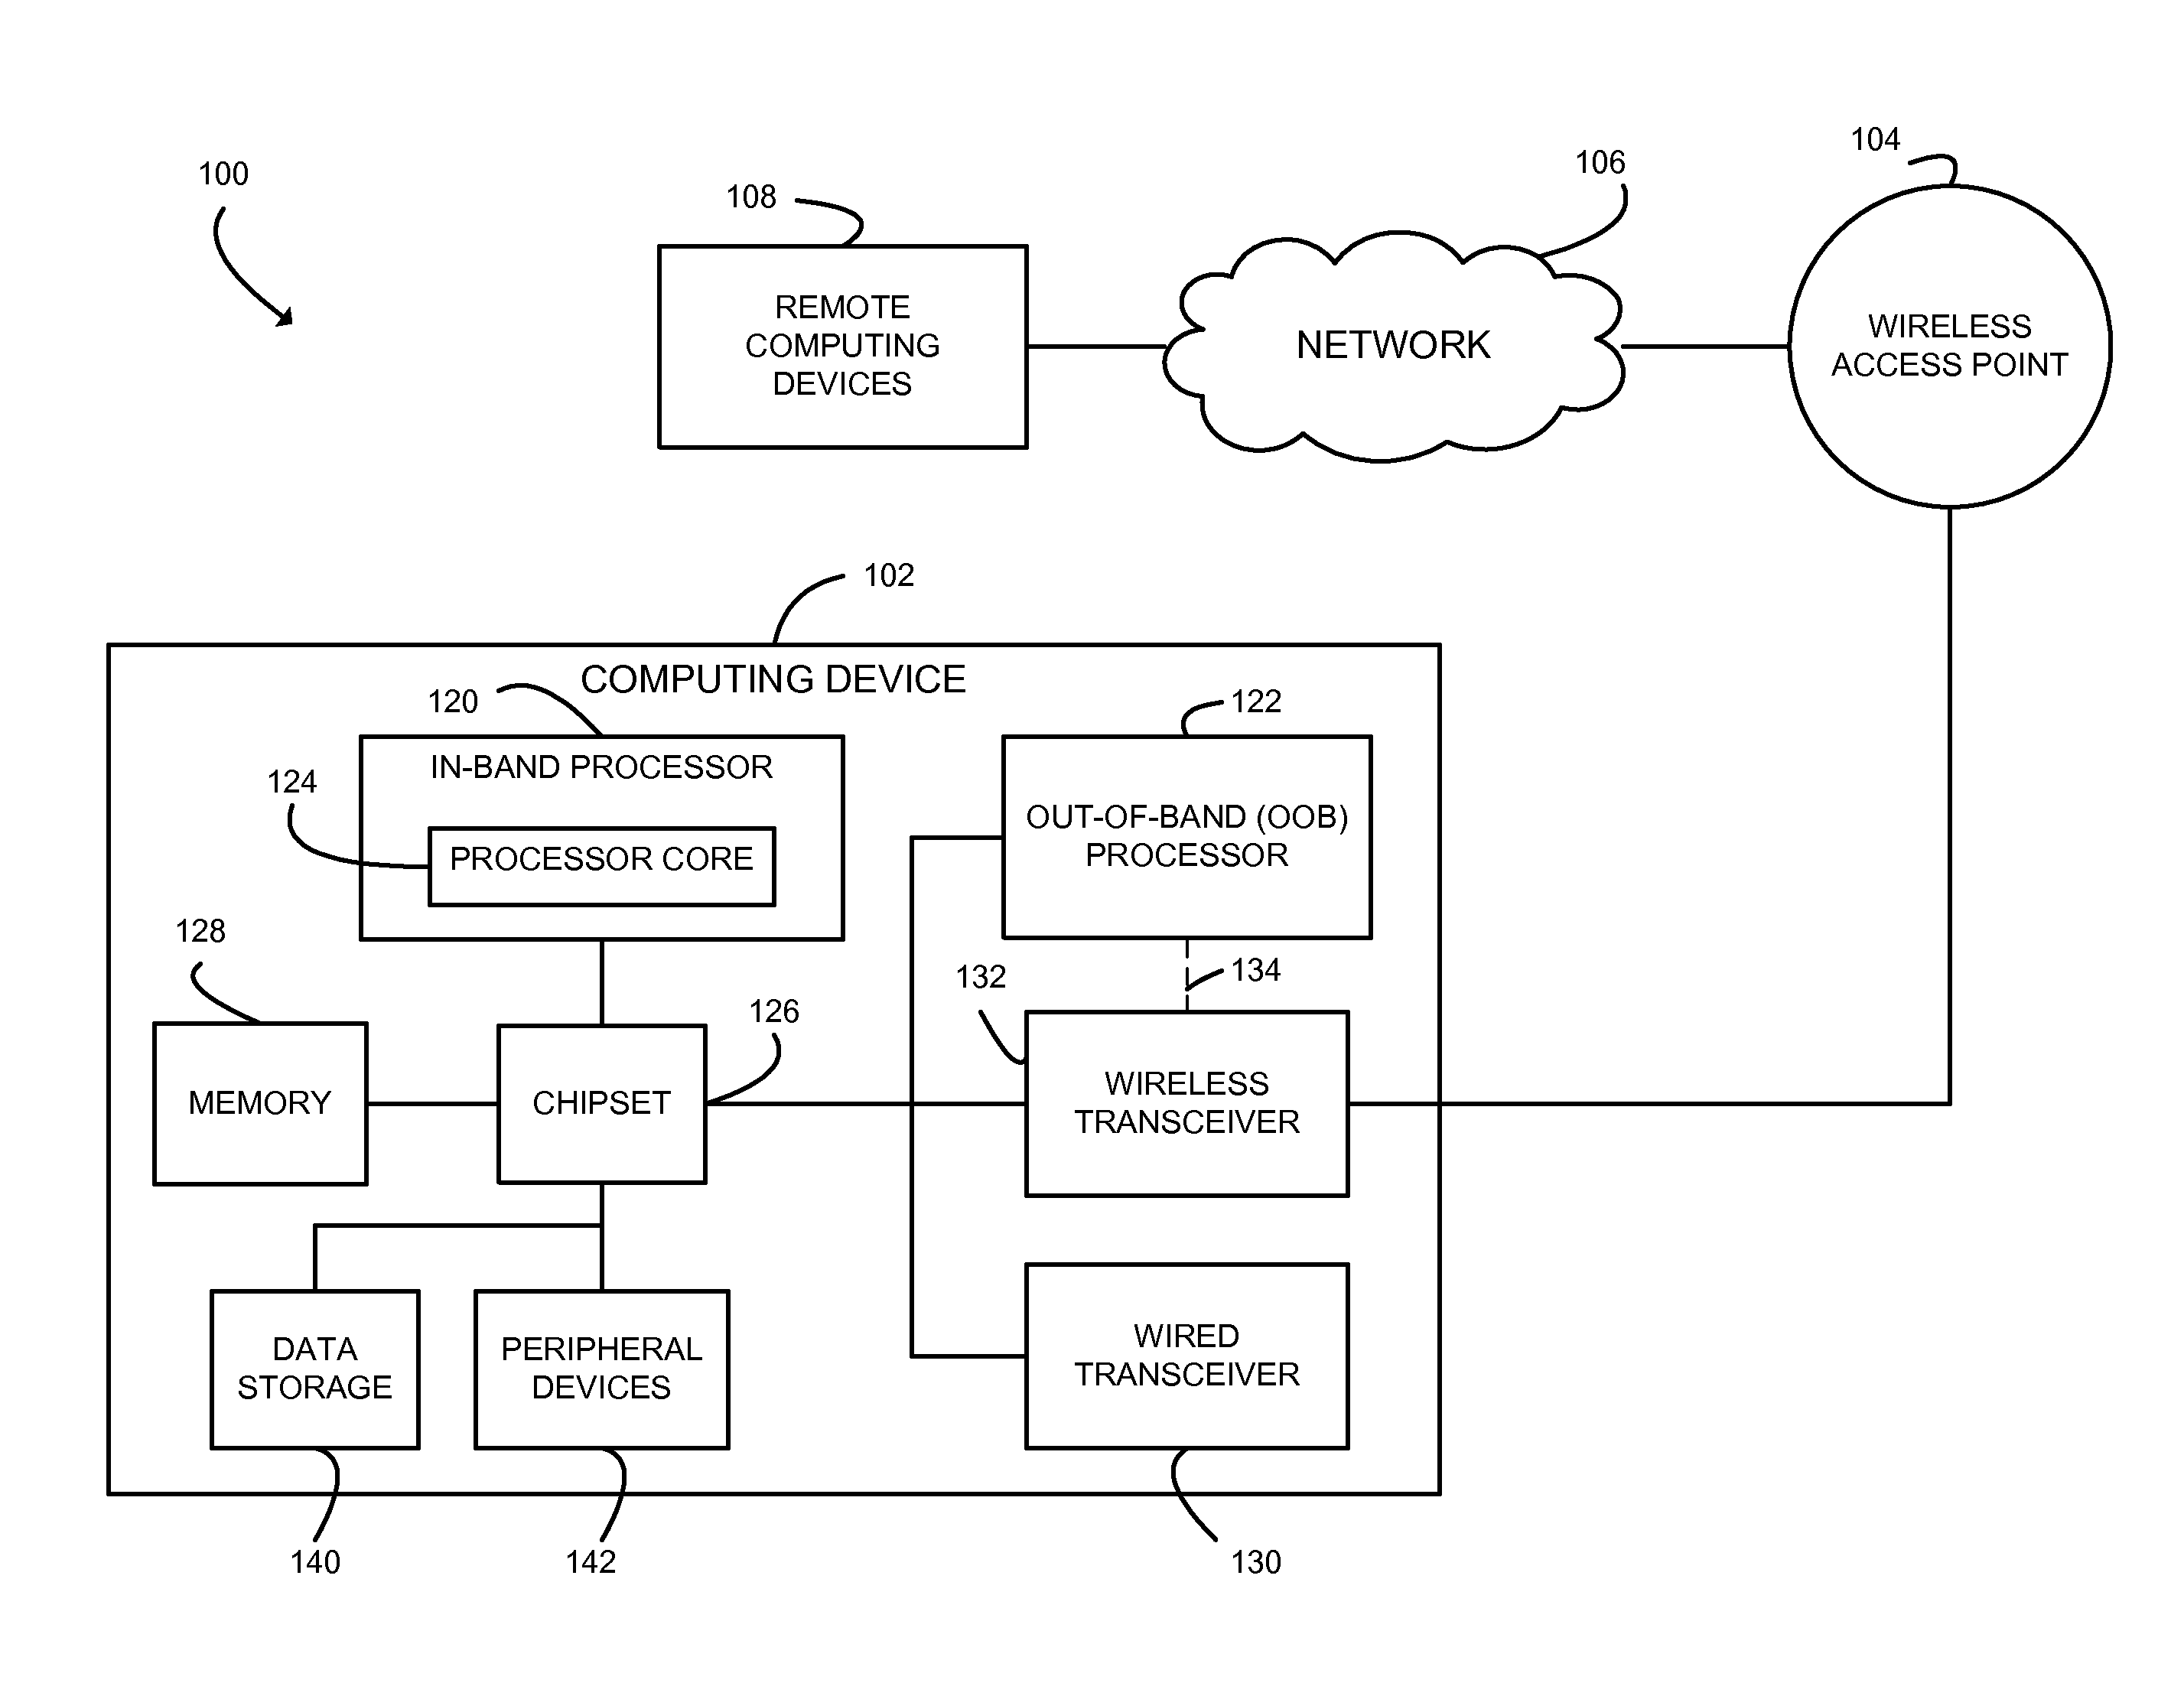 Analytics For Us Patent No 8386618 System And Method Integrated Circuit Diagram Communicationcircuit The Wireless Communication During Pre Boot Phase By Reformatting Data Communications Between Wired Standards